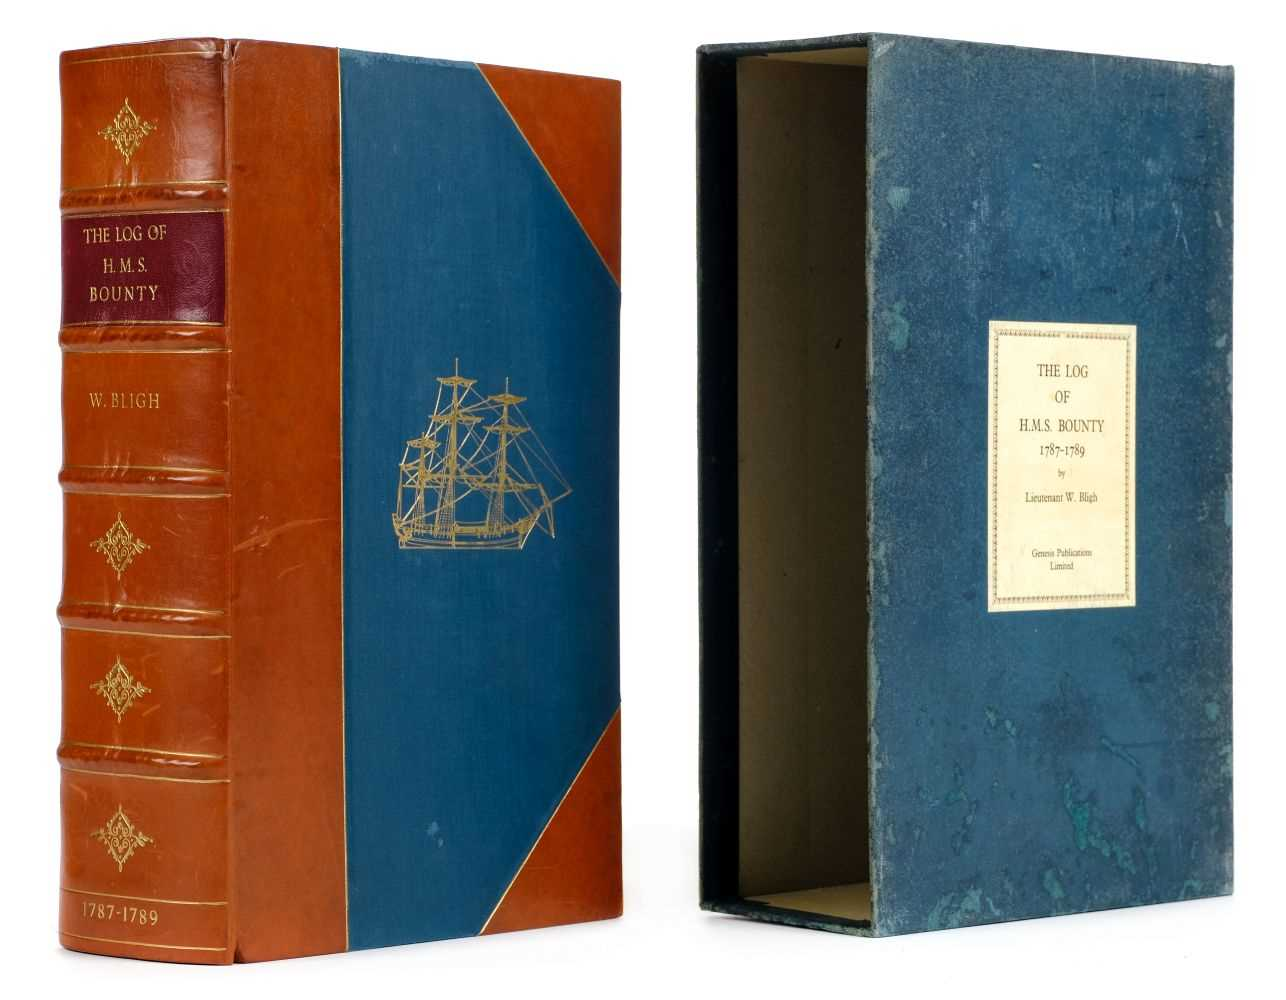 Lot 6-Bligh (William). The Log of H.M.S. Bounty, Genesis Publications, 1975